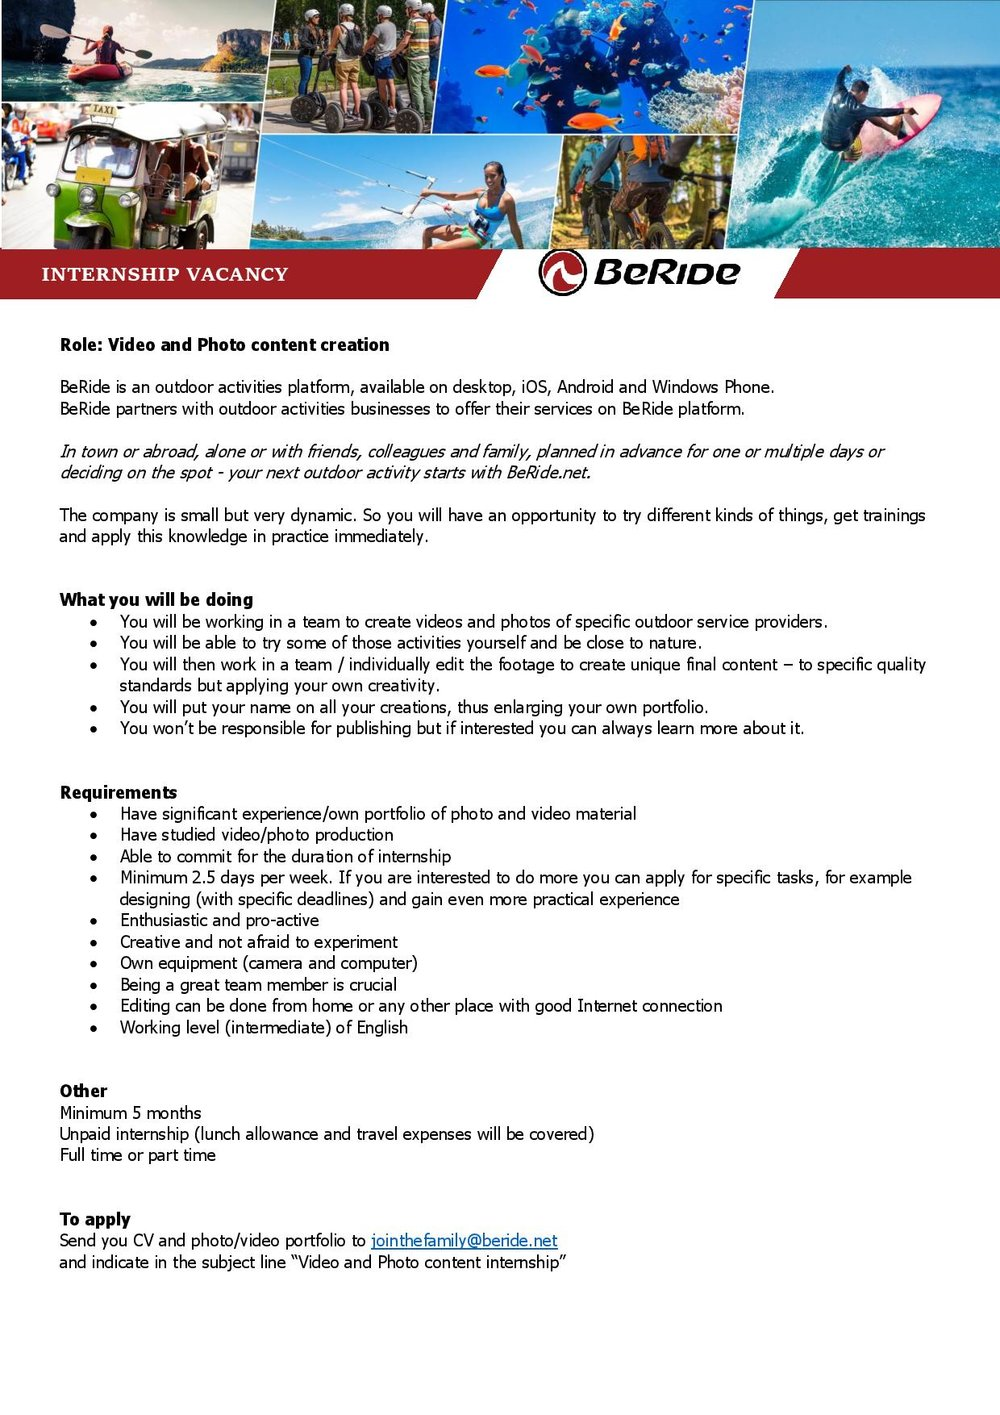 BeRide - Video and photo content creation Internship-page-001.jpg